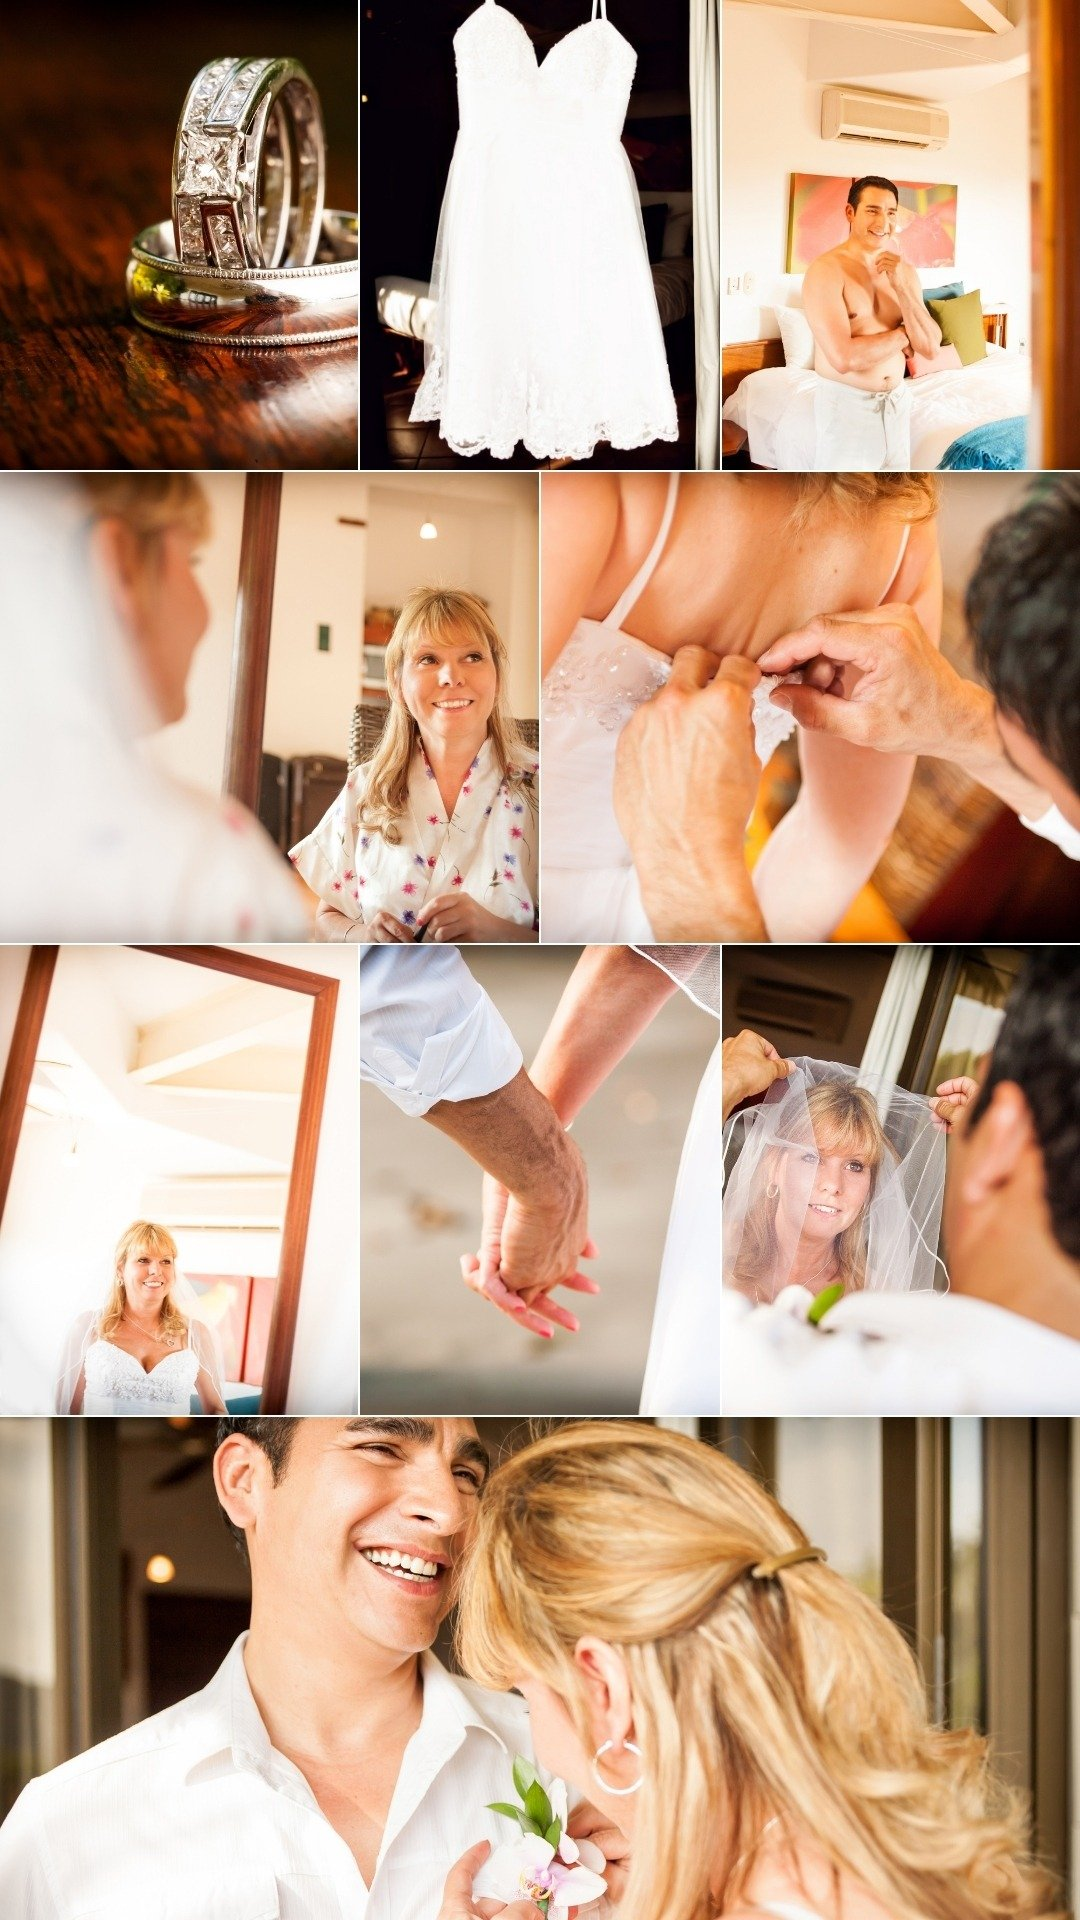 full service adventure wedding packages